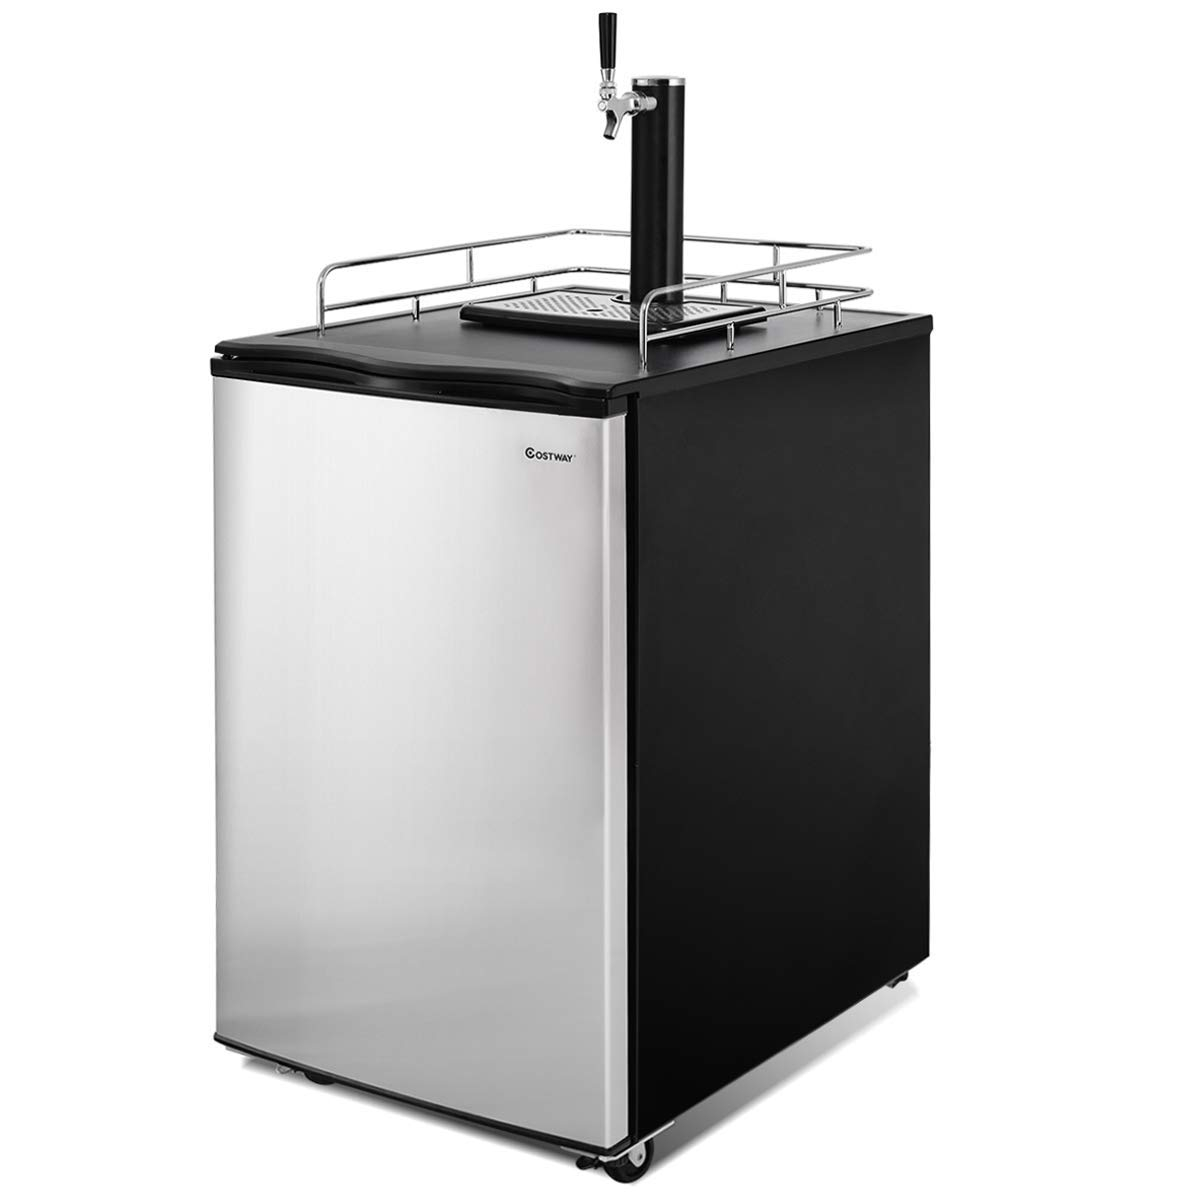 Countertop Beer Cooler And Tap 484 95 6 1 Cu Ft Beer Dispenser Beer Cooler With